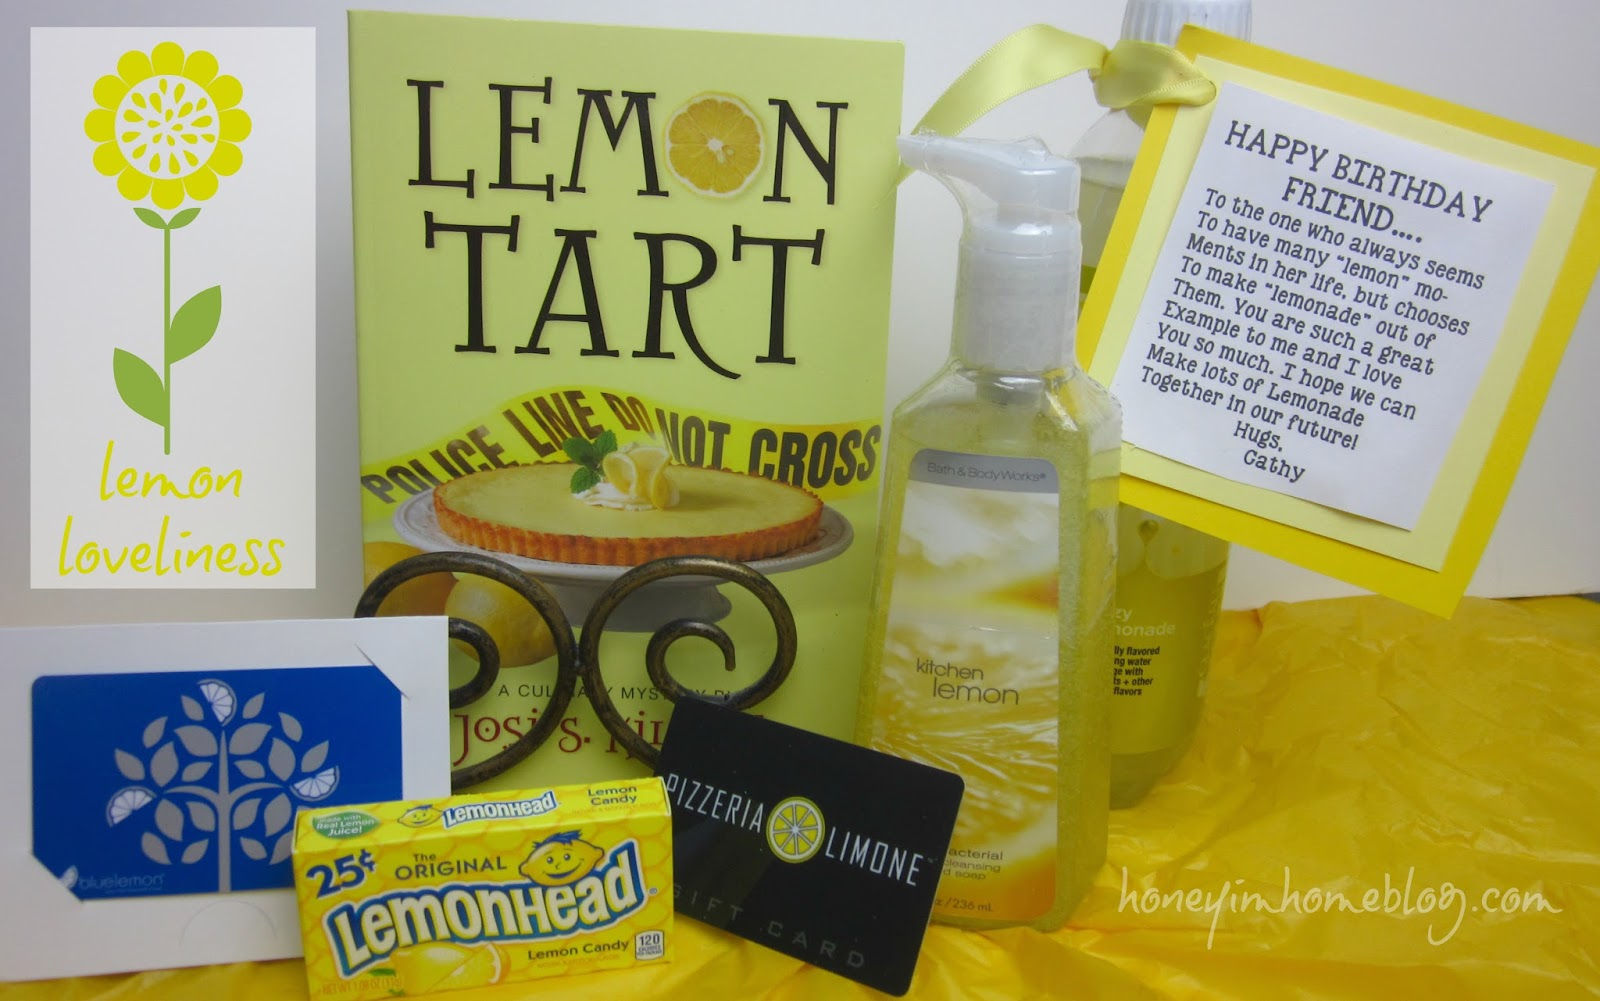 Honey im home 3 extraordinary gift ideas lemon themed treats including gift cards for two of my favorite restaurants which of course have lemon in the title and the note negle Images